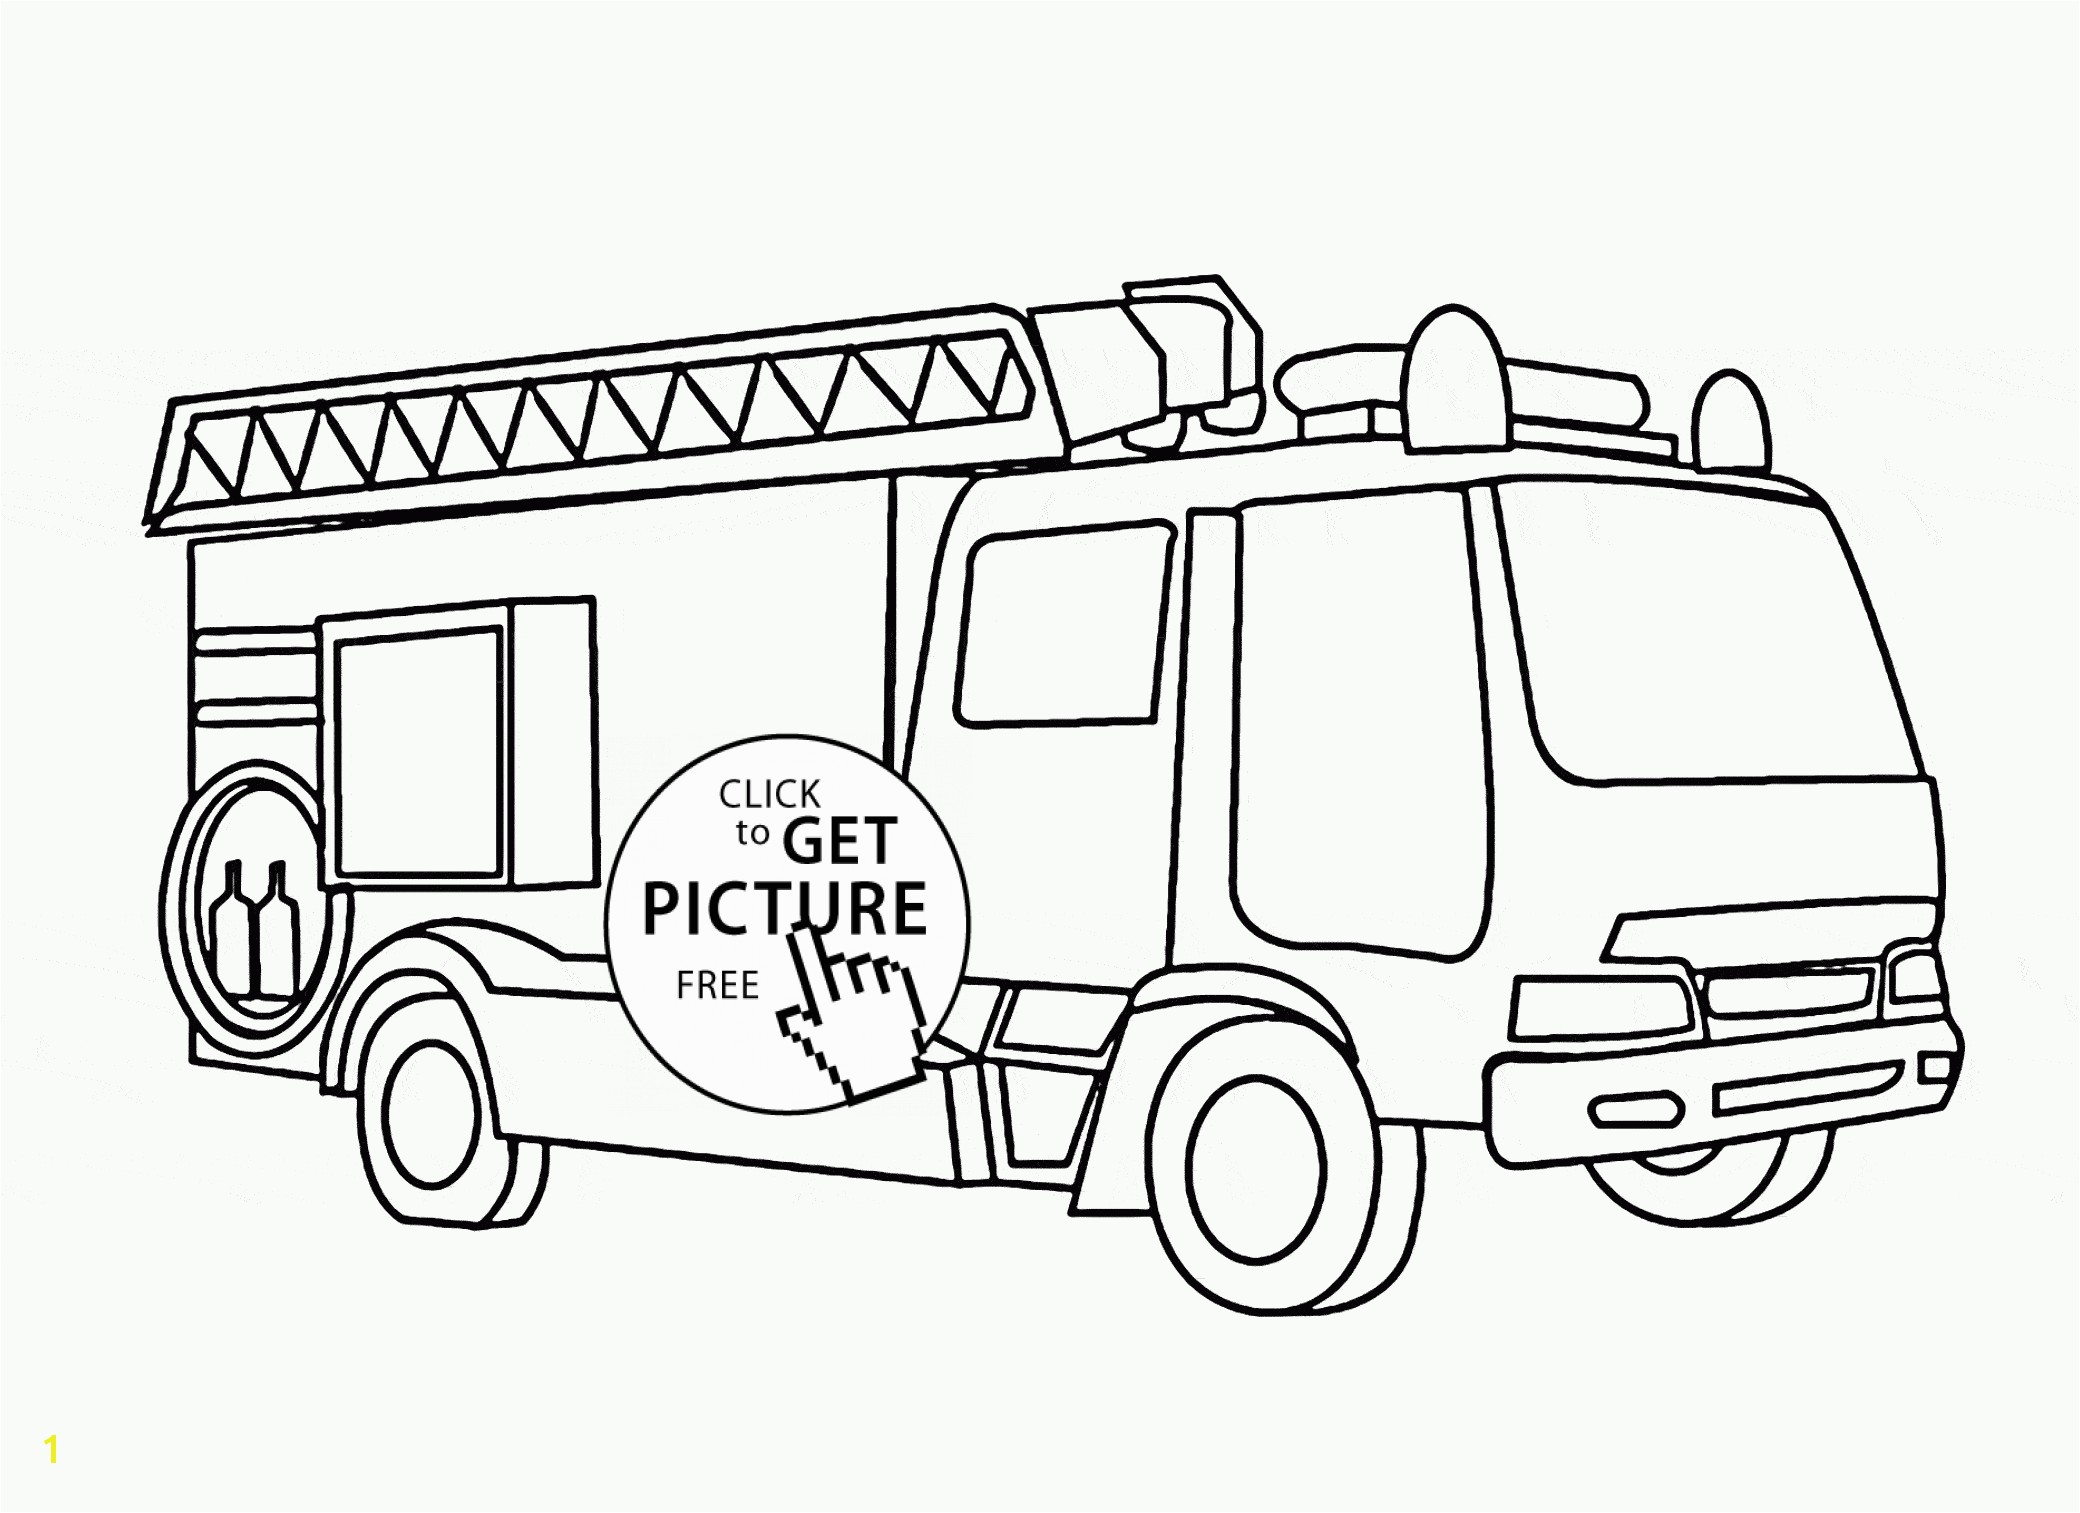 2080x1513 Fire Truck with Ladder coloring page for kids transportation